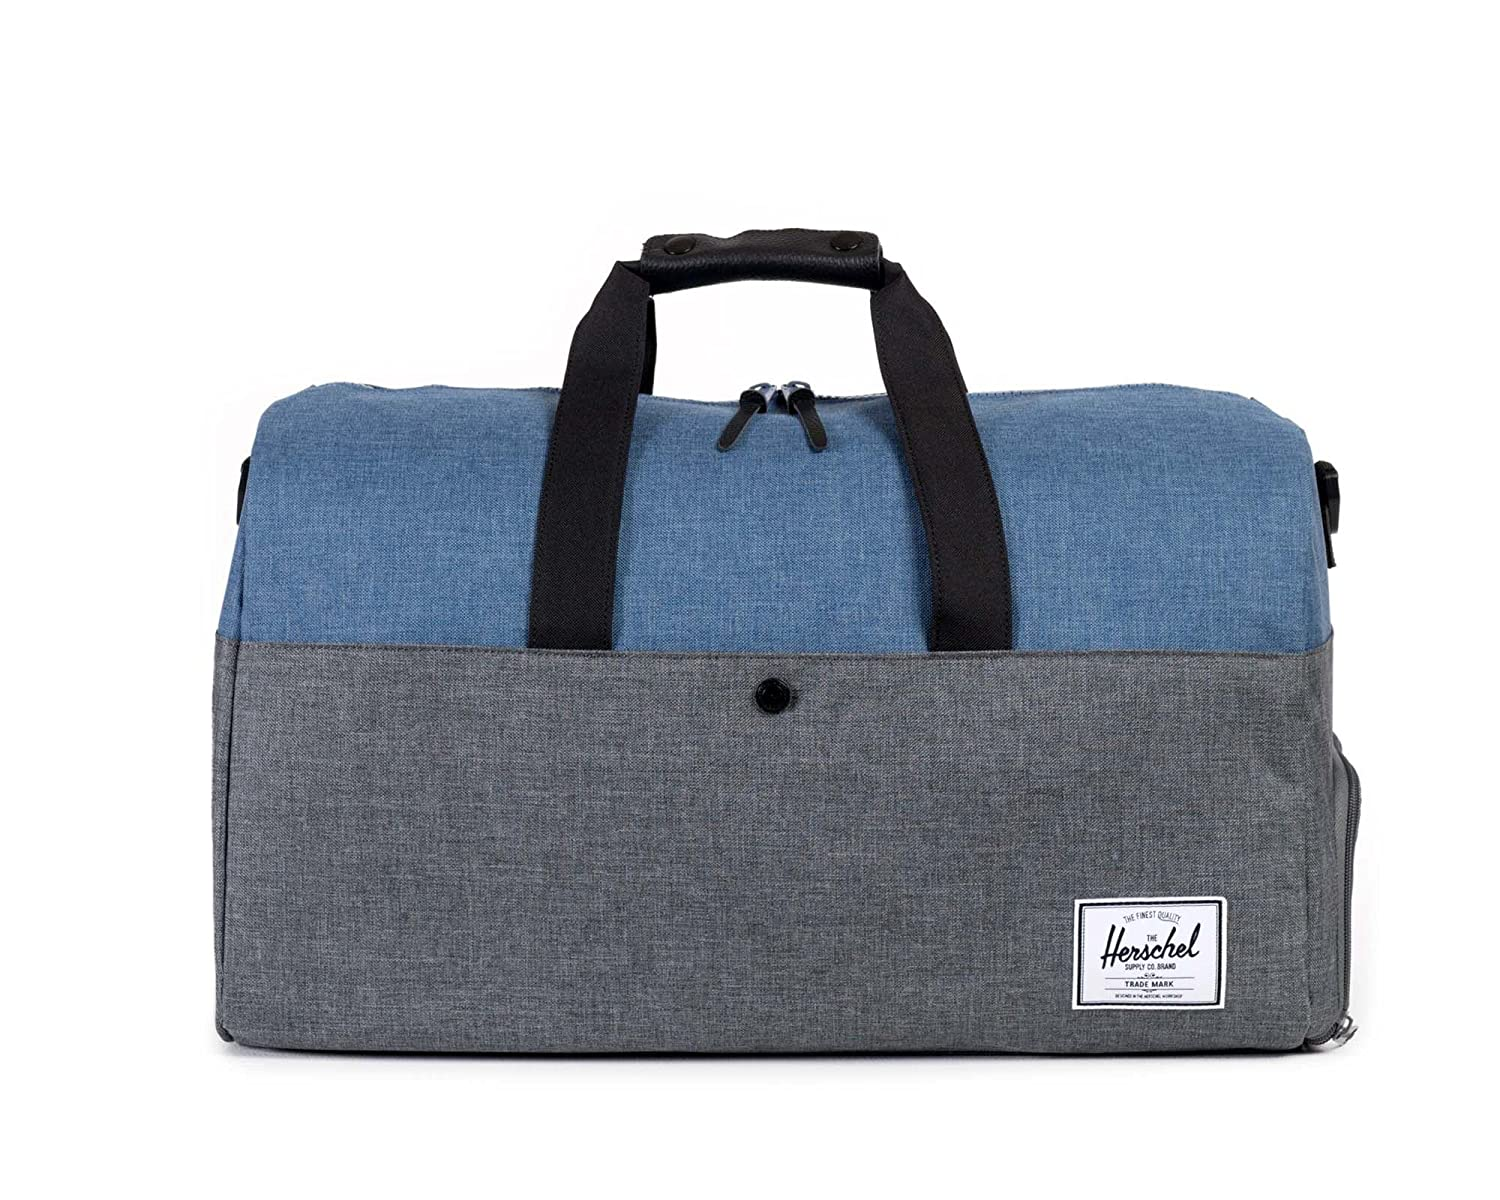 f17959d6e6 Herschel Supply Company Lonsdale Travel Duffle